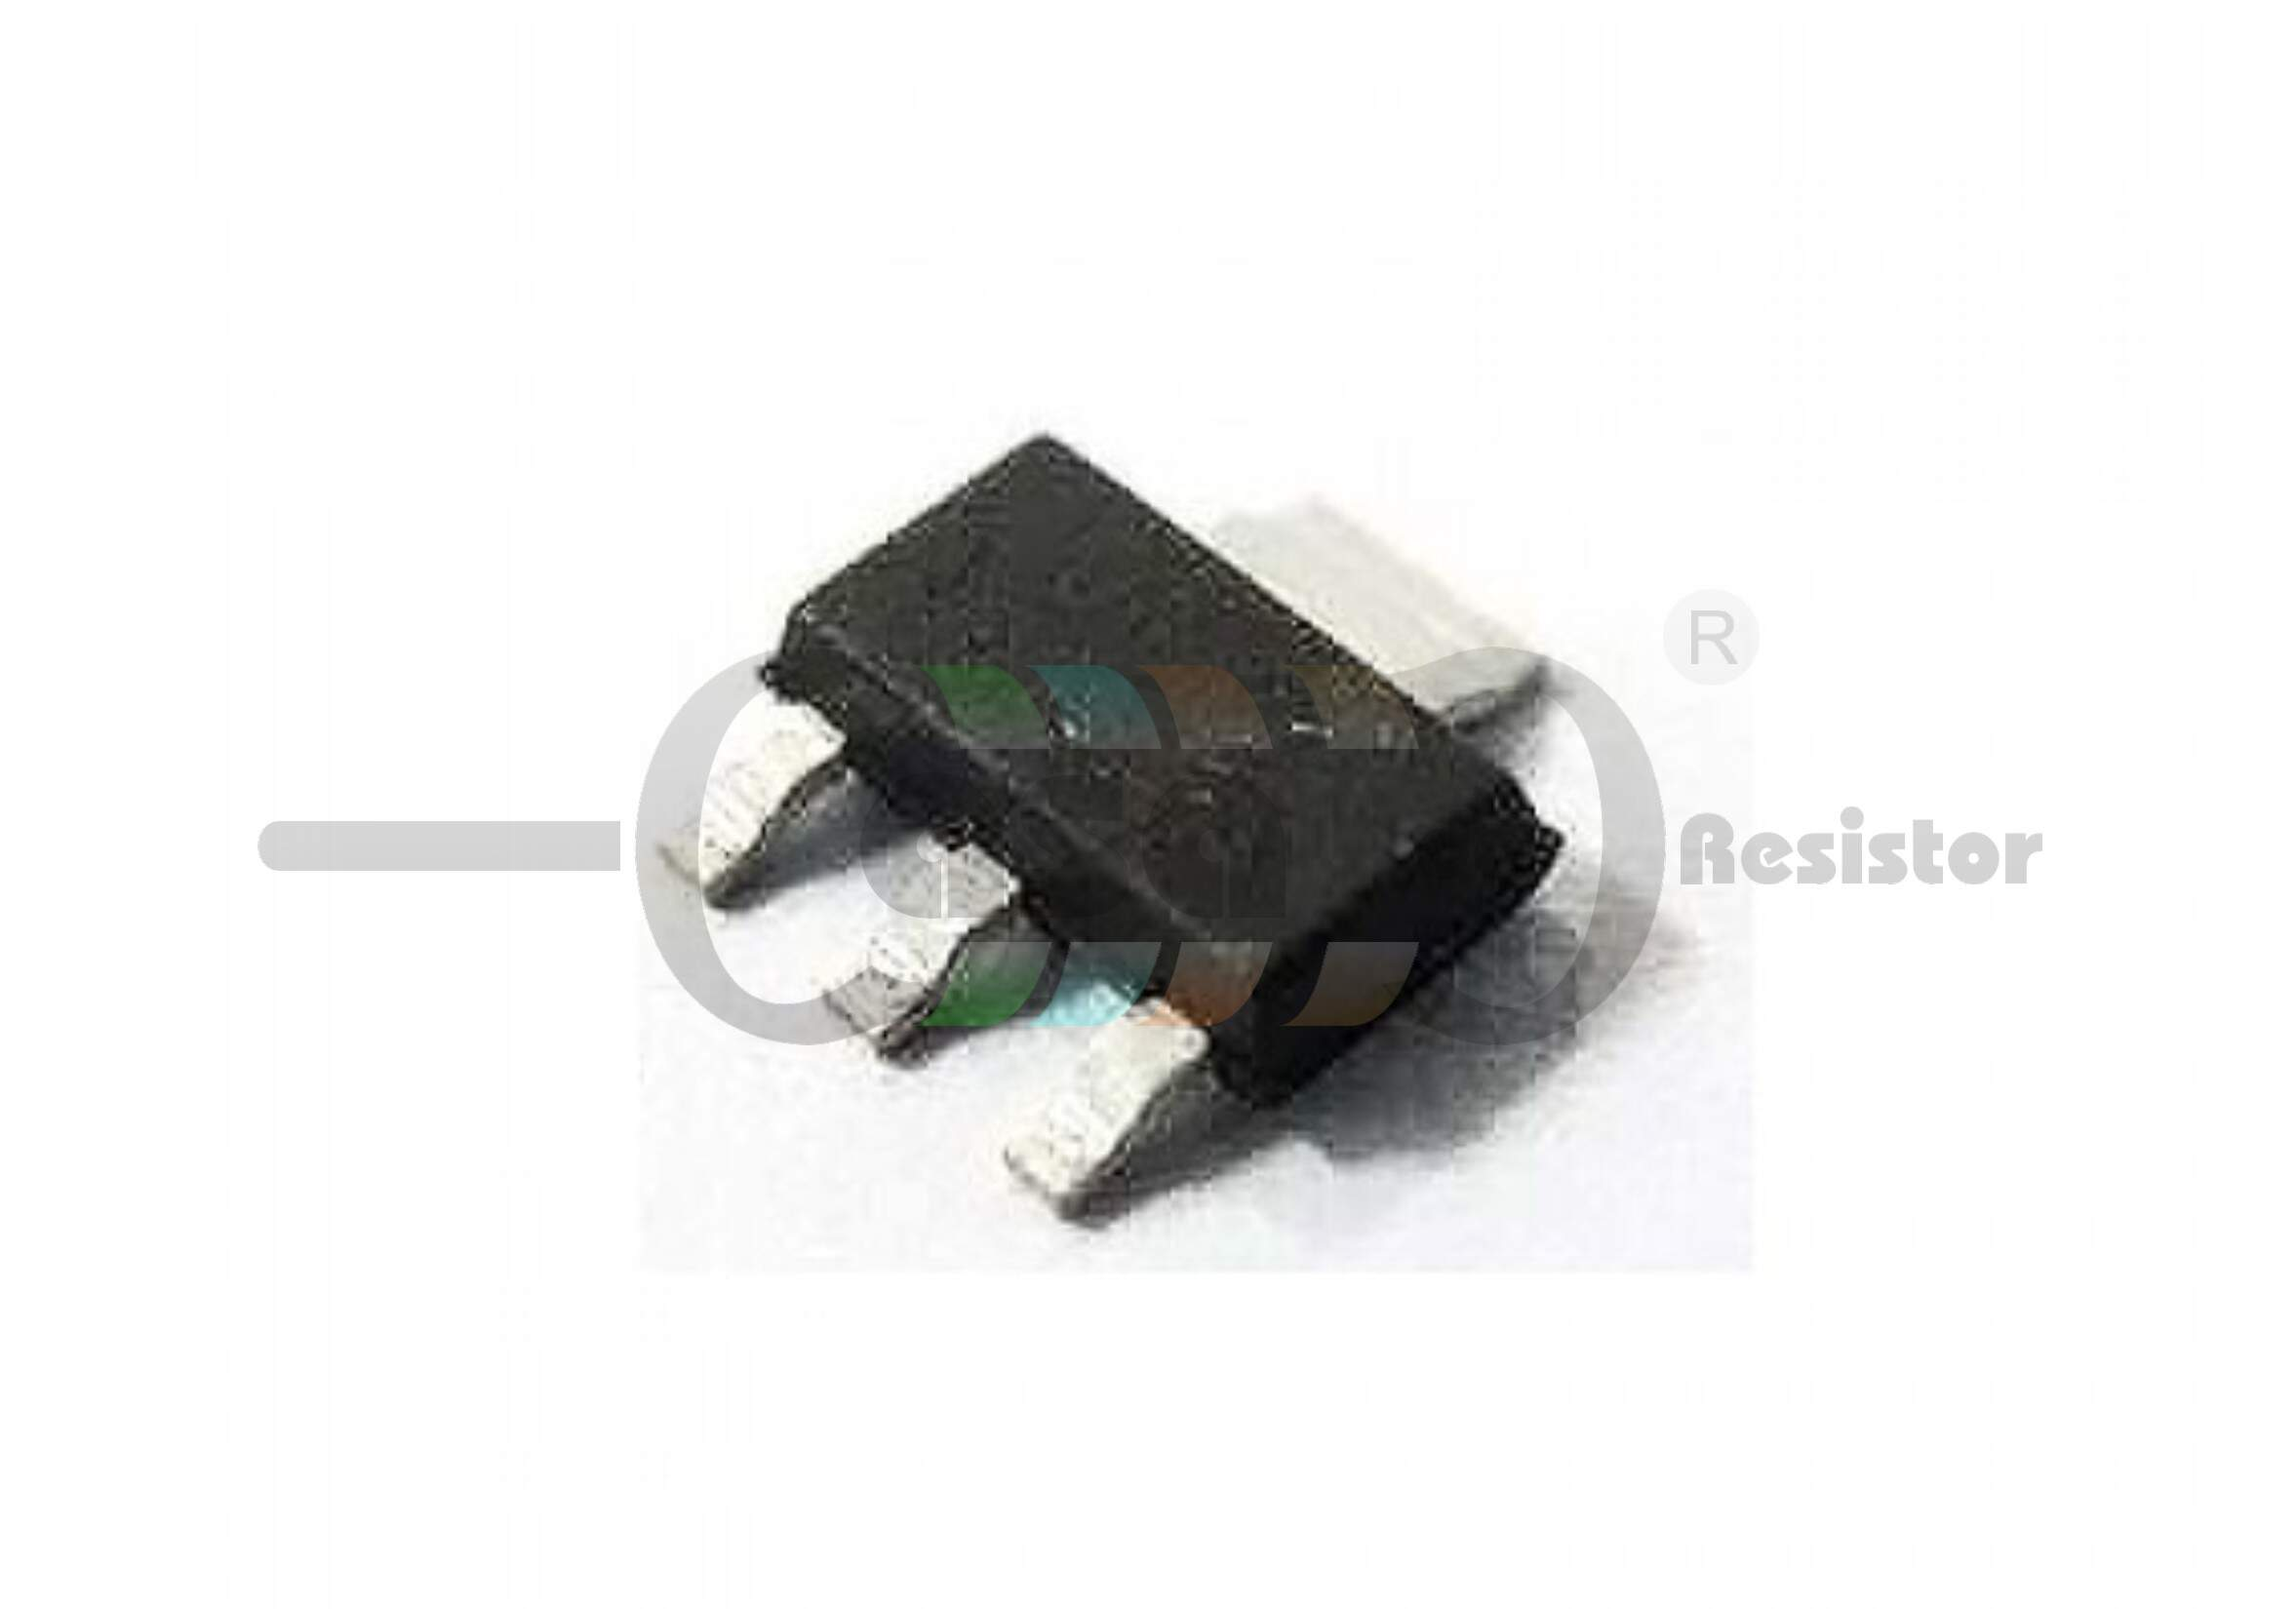 CI SMD 78L06 SOT-89 (ZCUS0013)